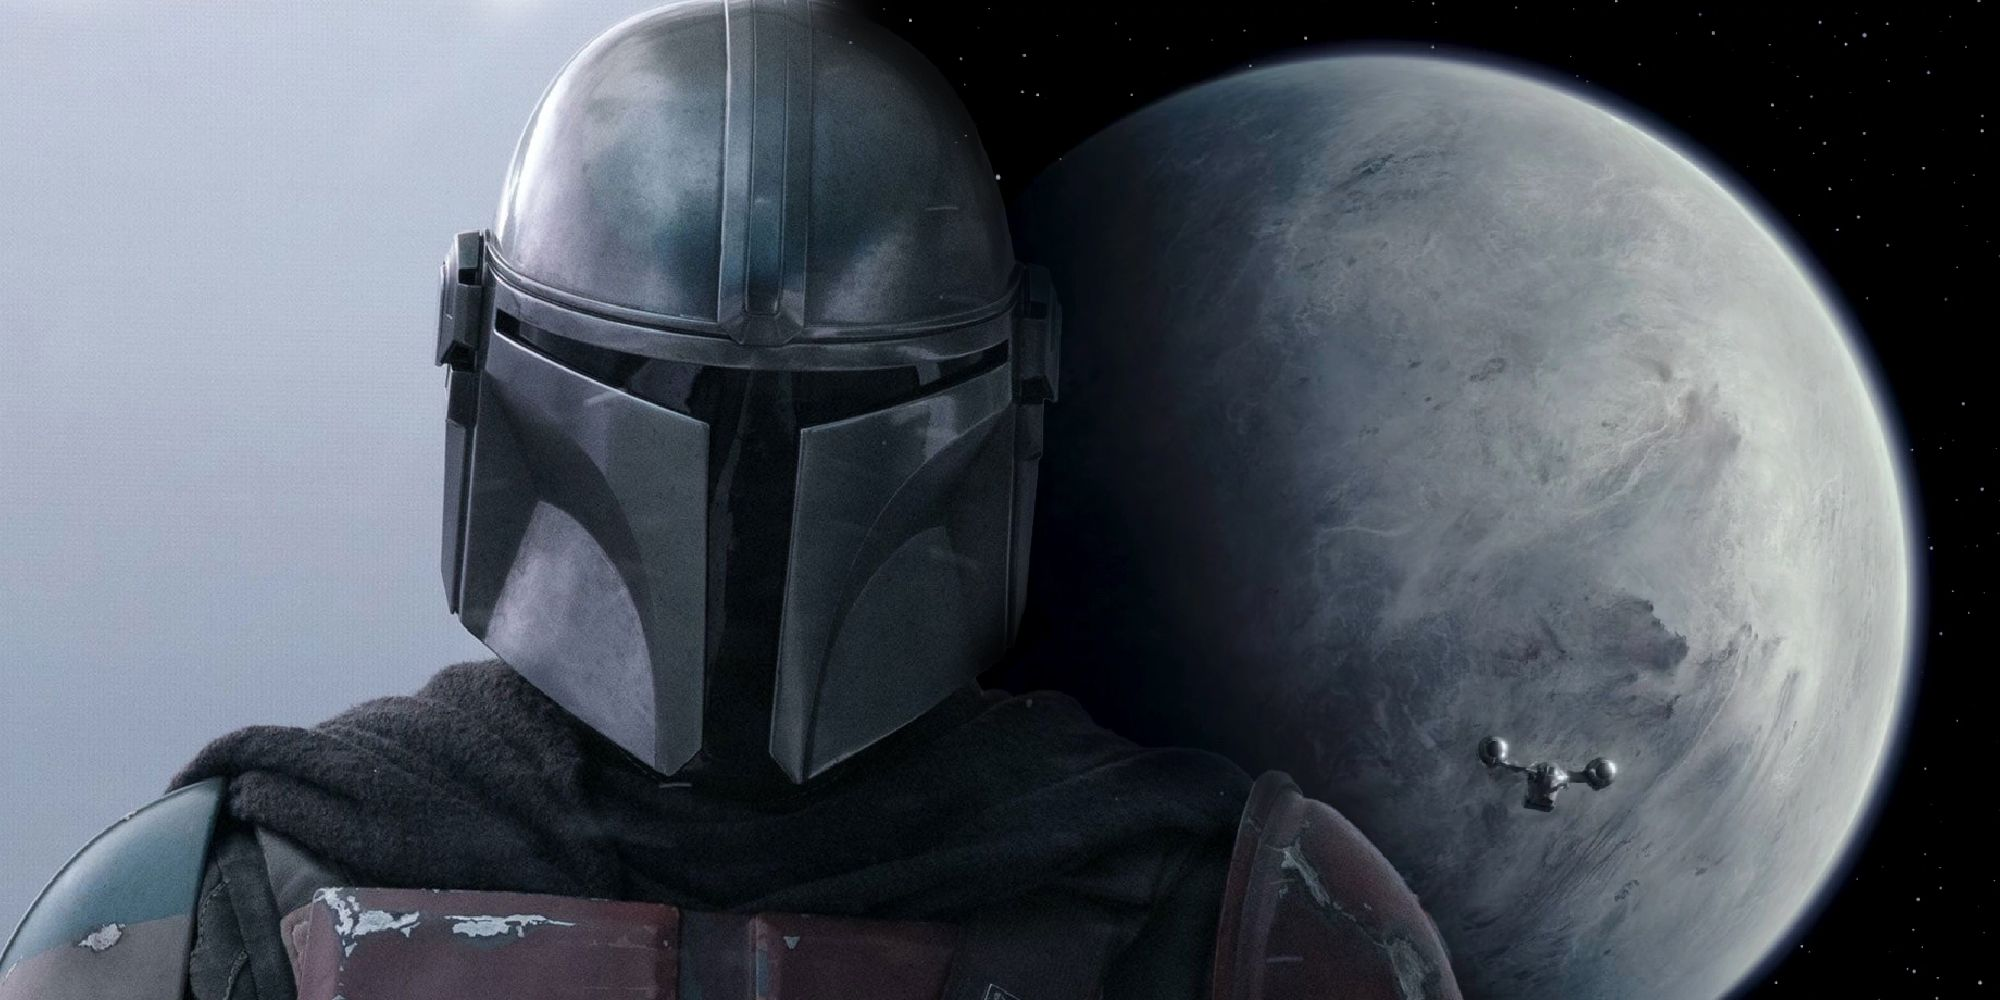 mandalorian season 2 - photo #14